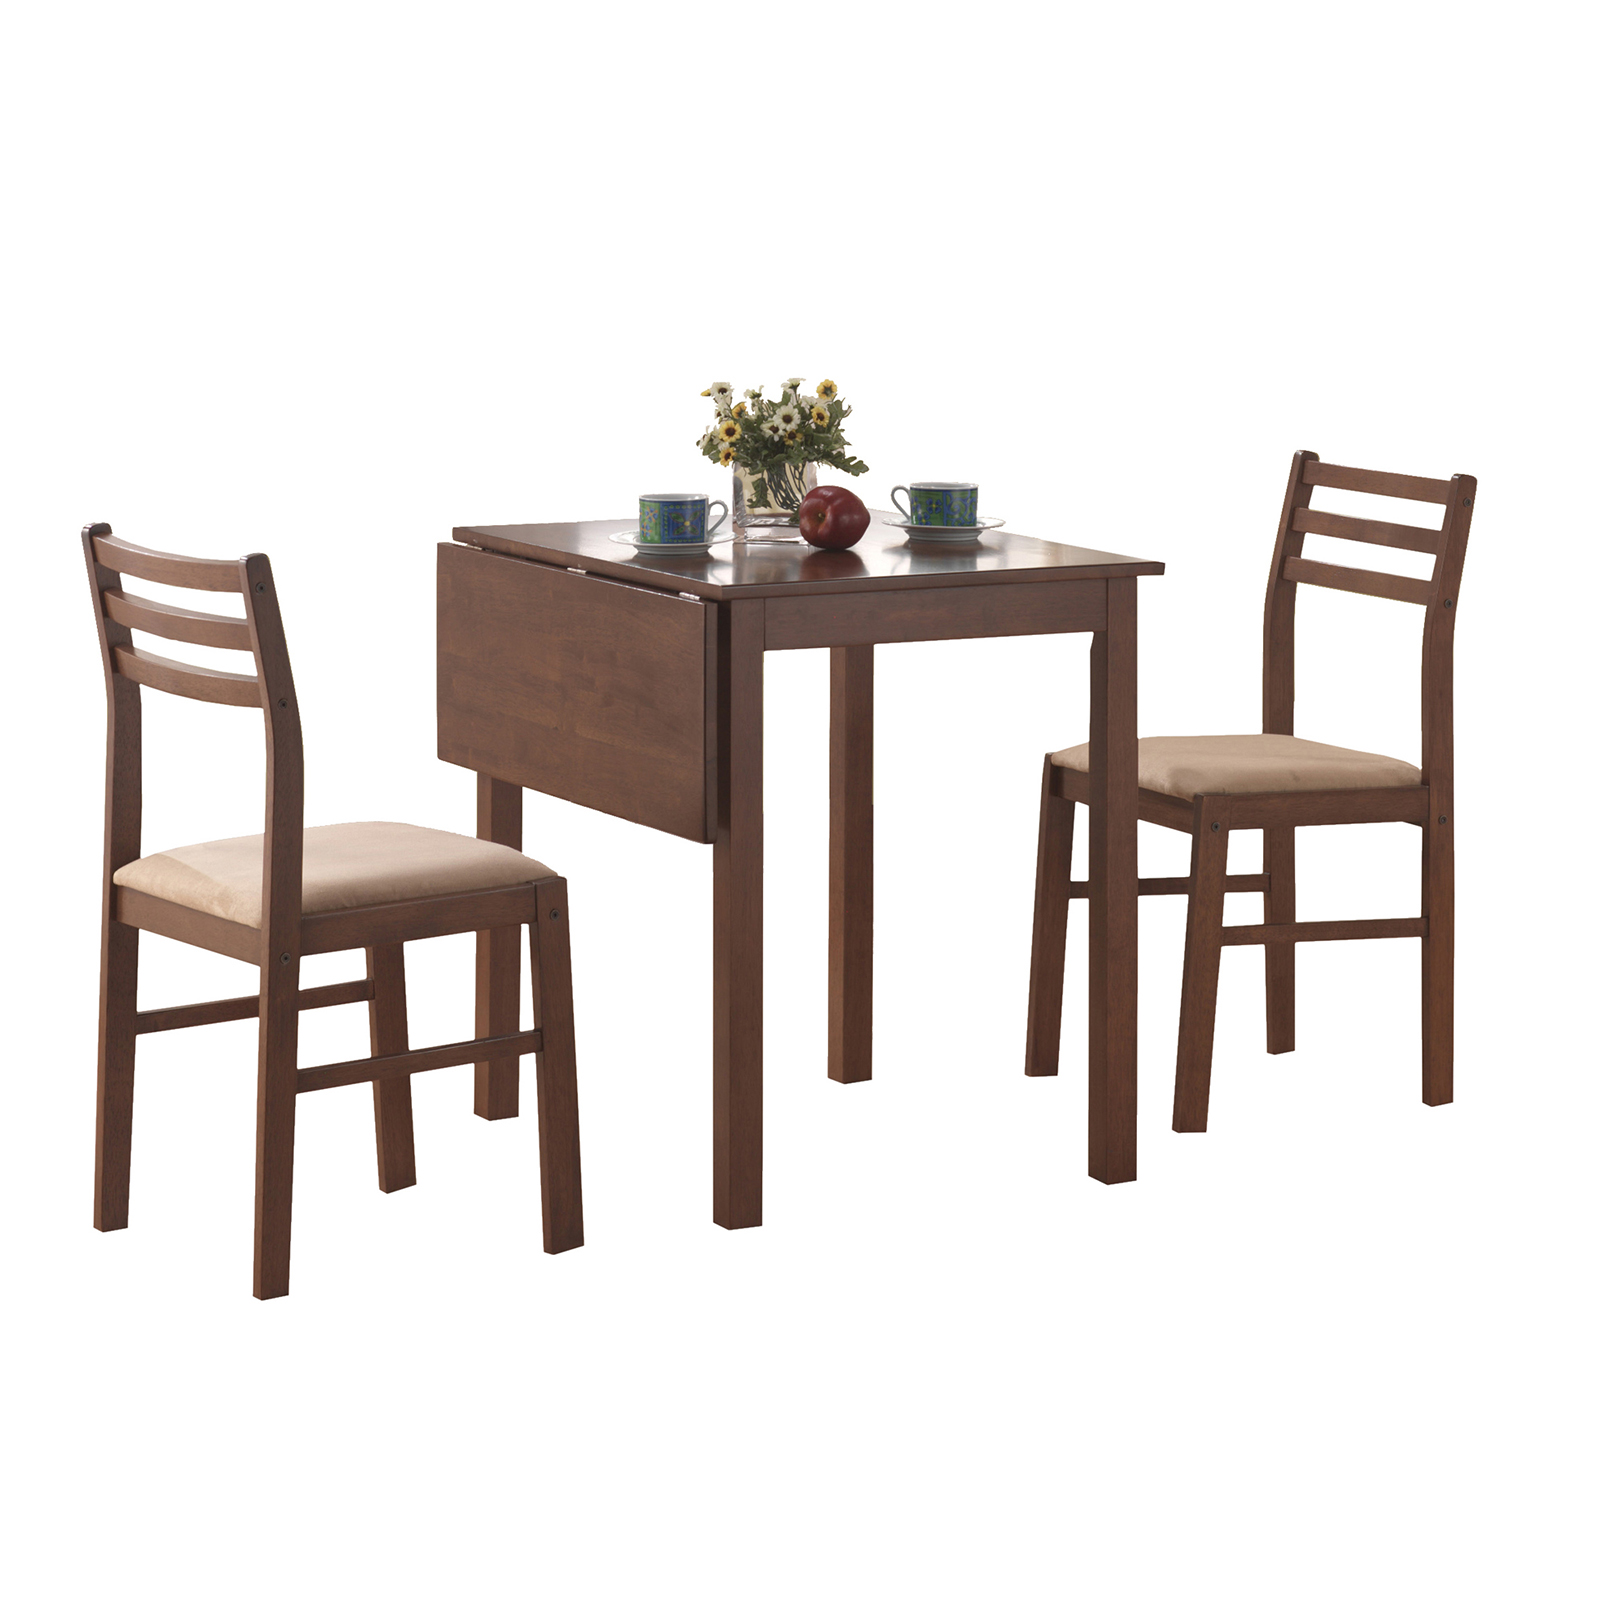 Monarch Specialties Belton 3 Piece Square Dining Table Set with Drop